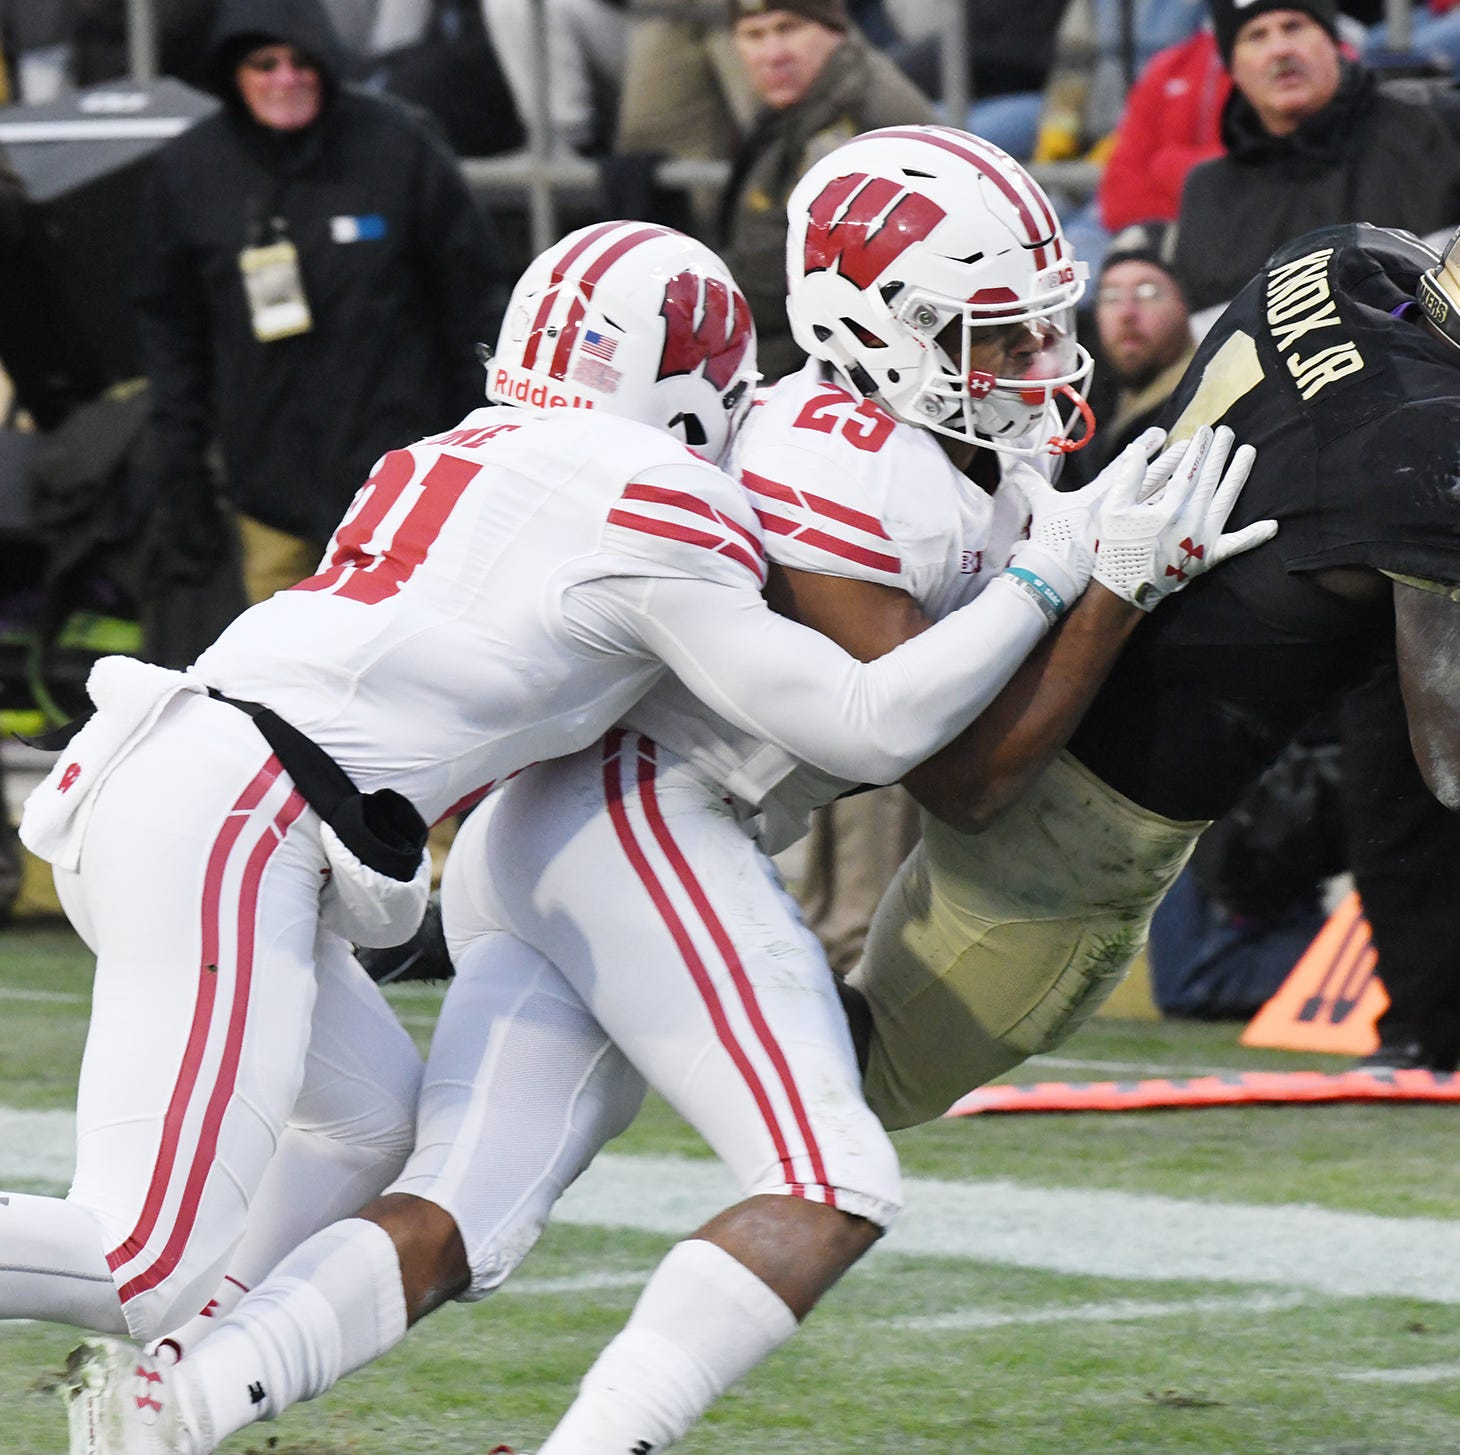 Wisconsin 47, Purdue football 44, 3 OT's | 5 takeaways